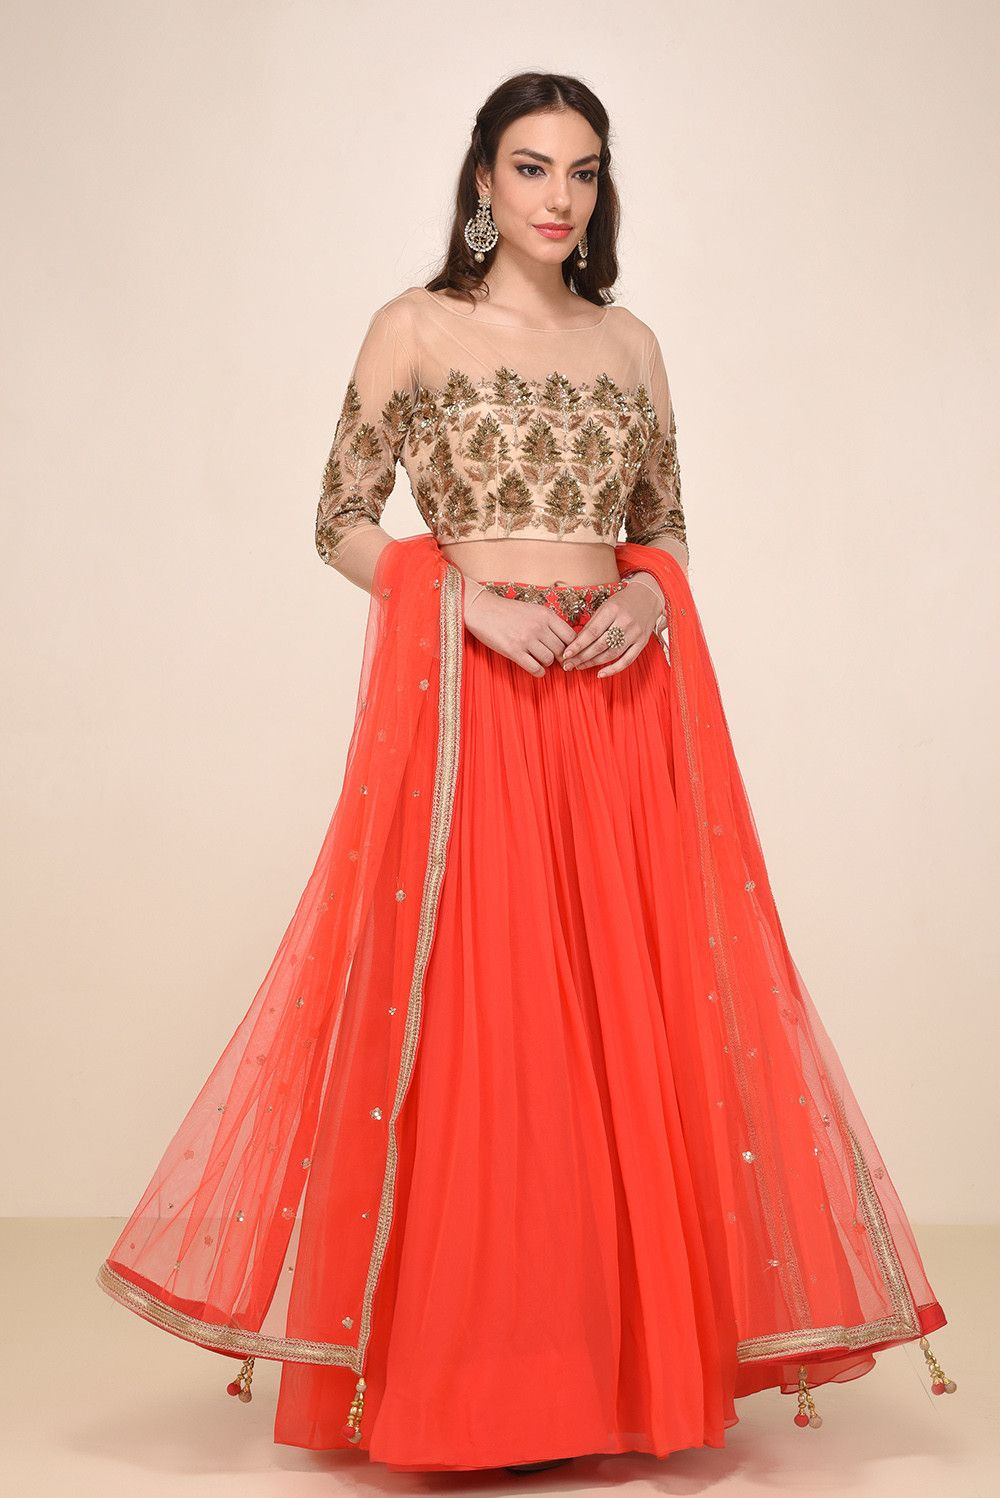 Rent your wedding dress  Rent HOUSE OF OMBRE  Embroidered Beige Blouse With Orange Lehenga